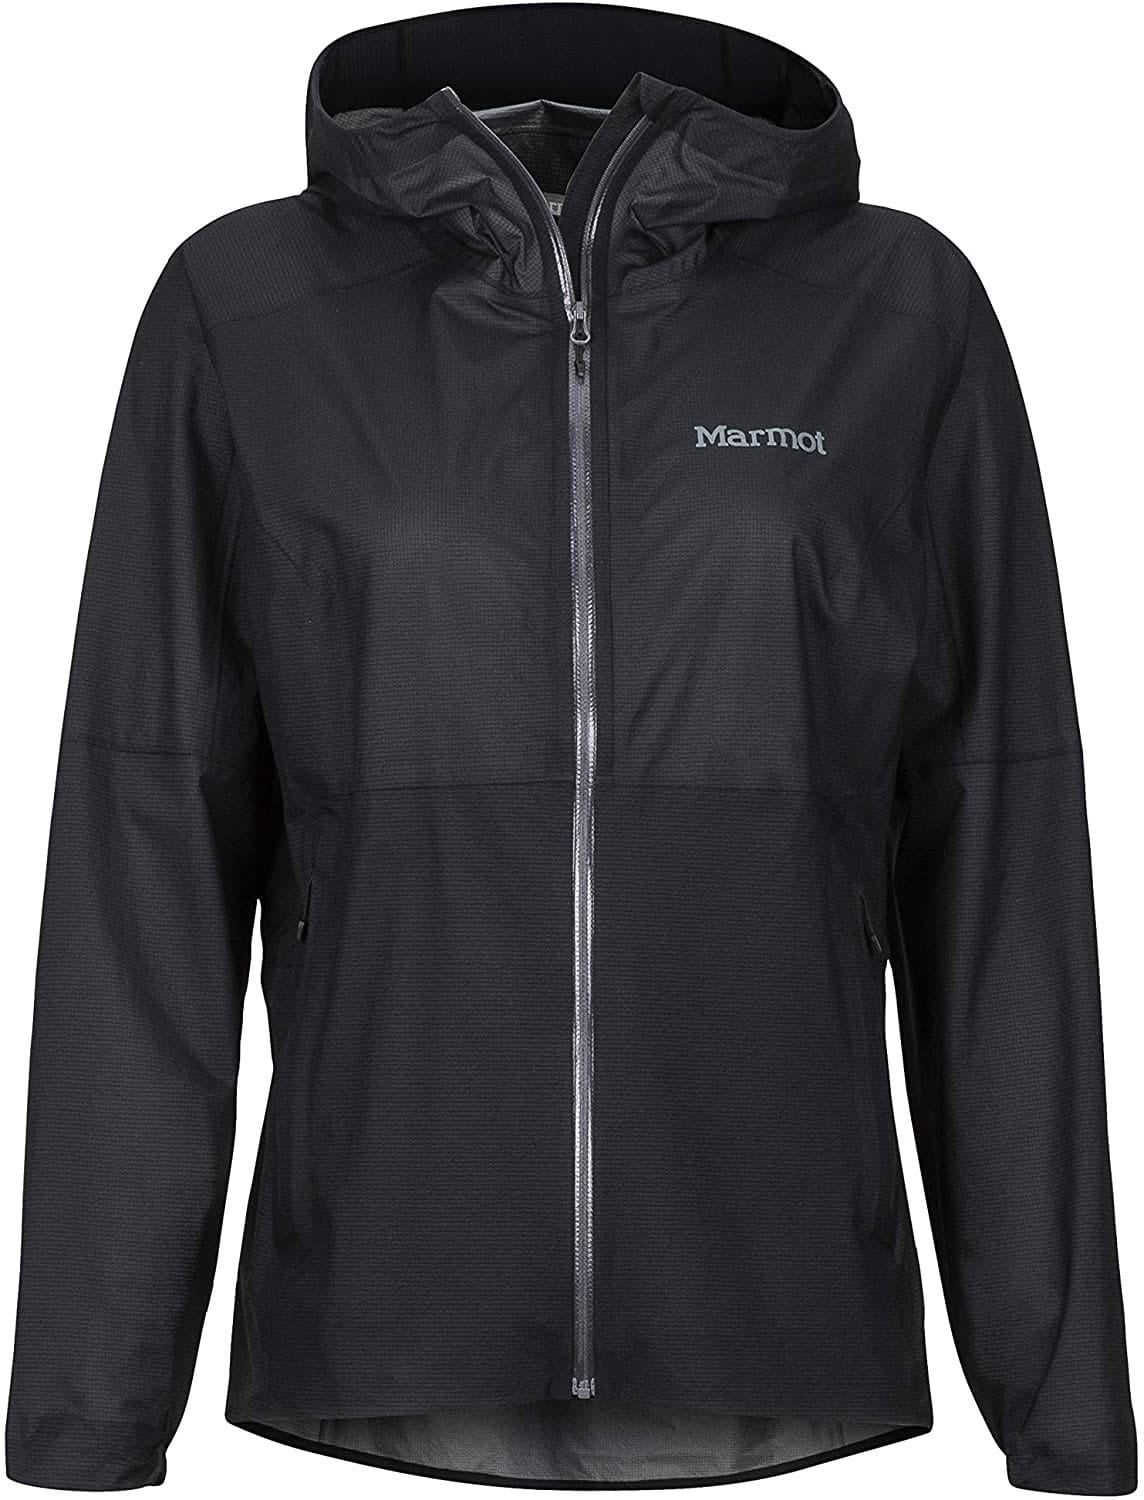 Weighing less than five ounces, the Marmot Bantamweight jacket is the perfect go-to rain jacket for on-the-go women